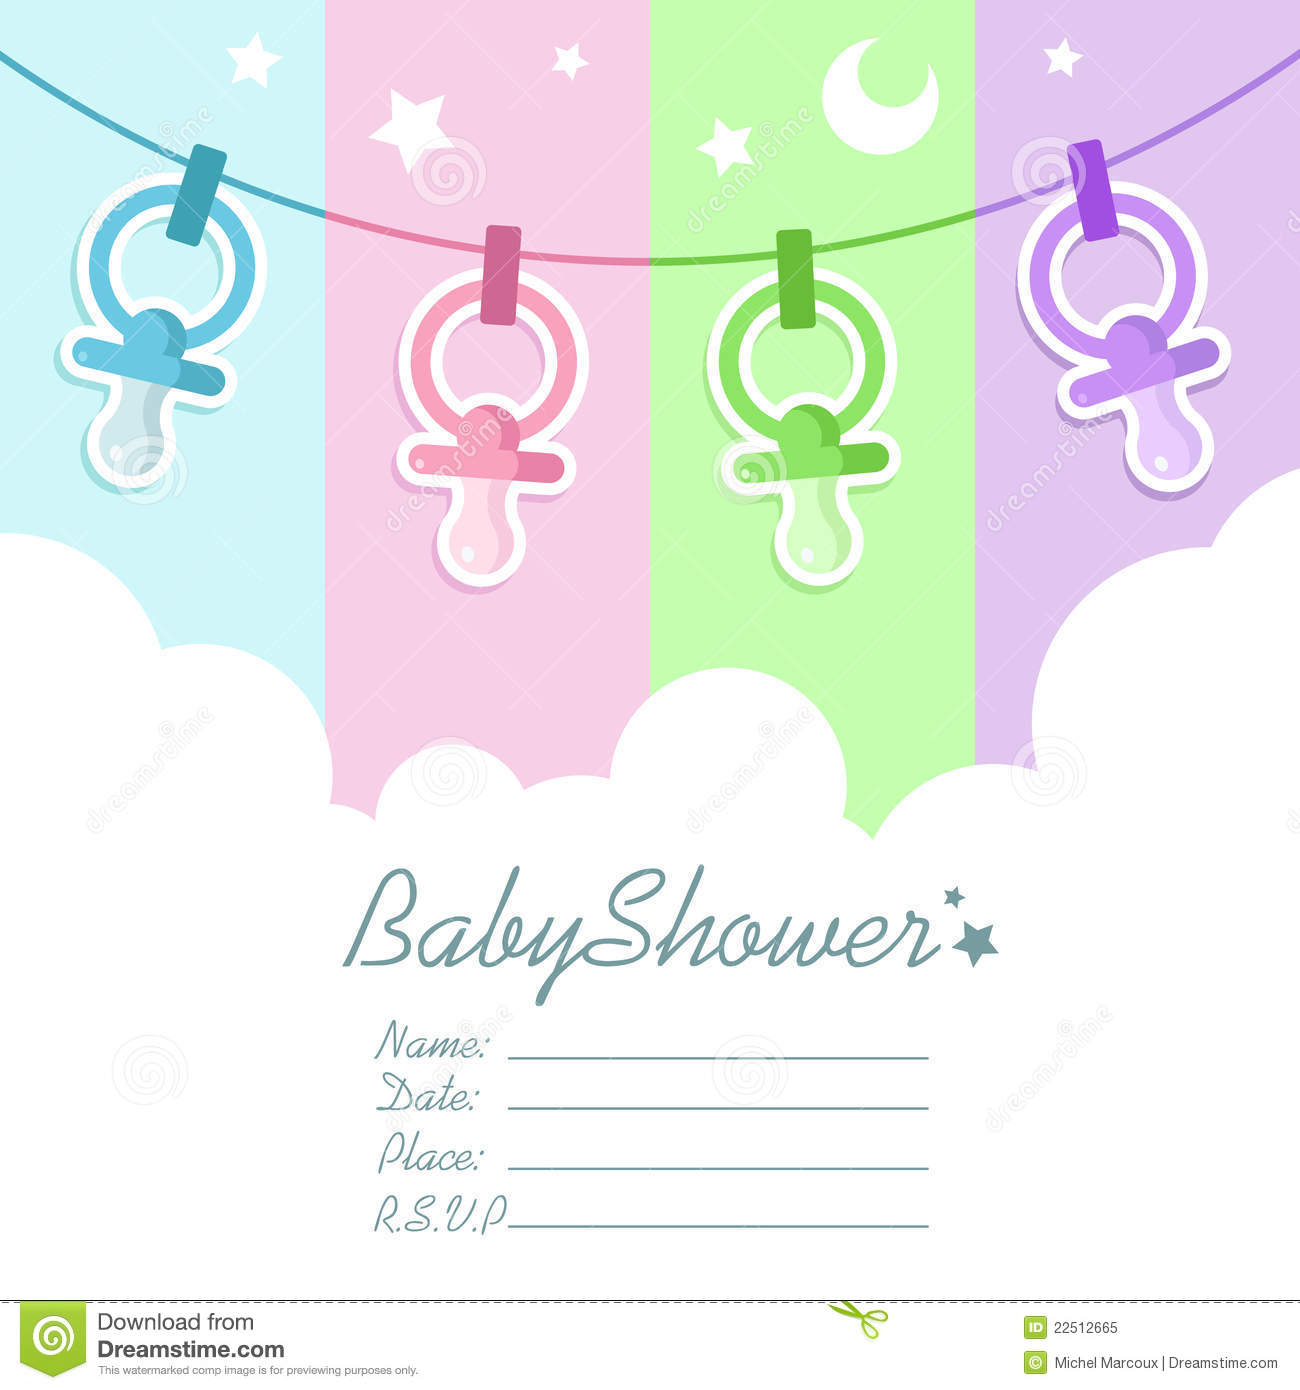 Baby shower invitation card stock vector illustration of moon baby shower invitation card stopboris Image collections